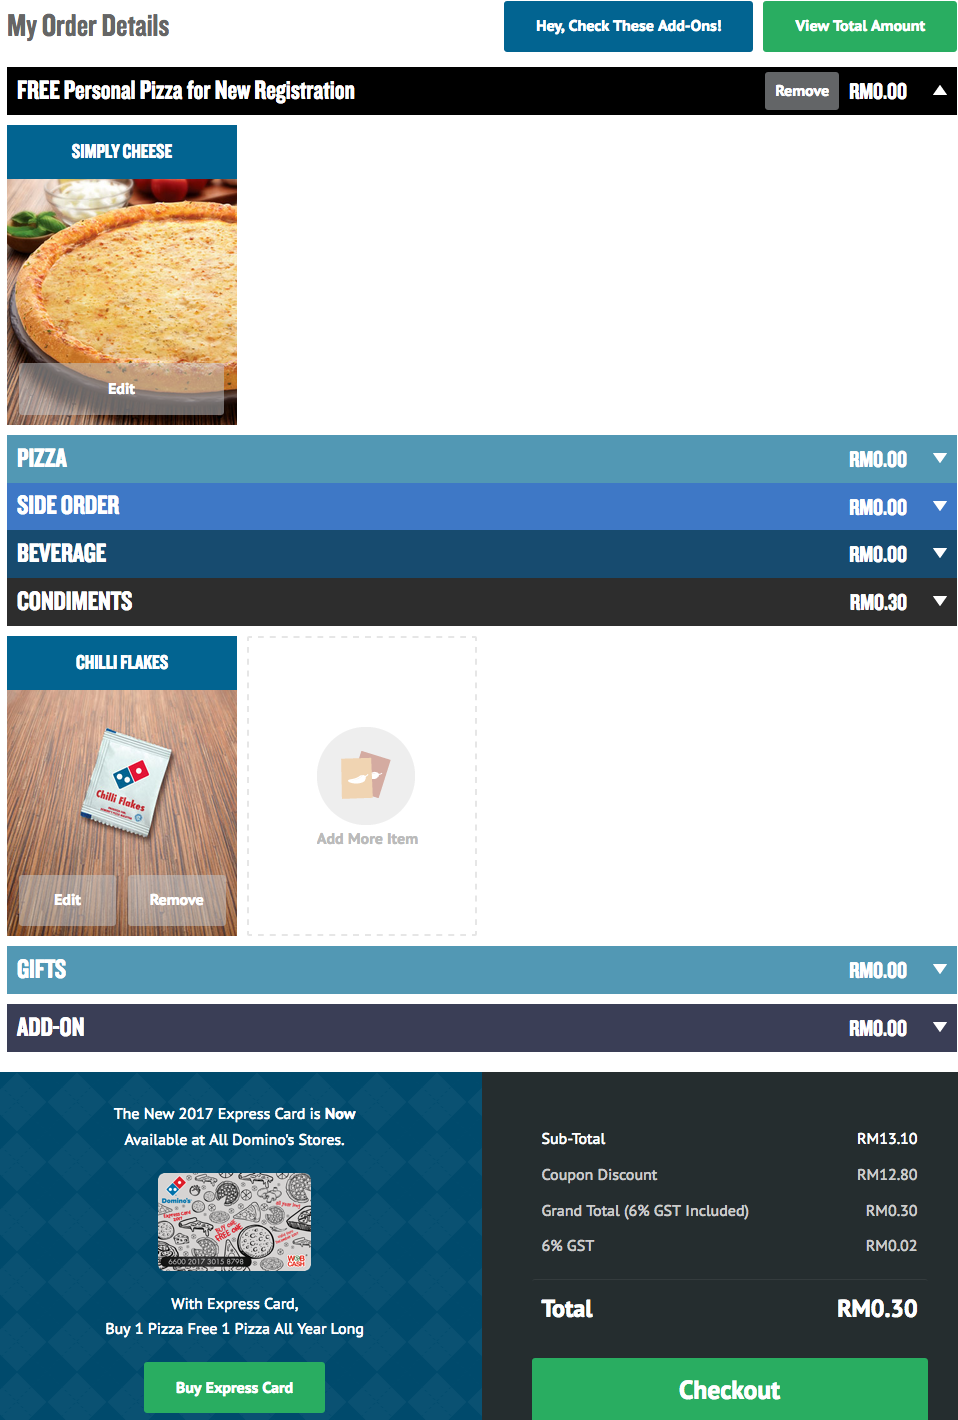 Dominos pizza coupons retailmenot - Dominos Vouchers Retailmenot